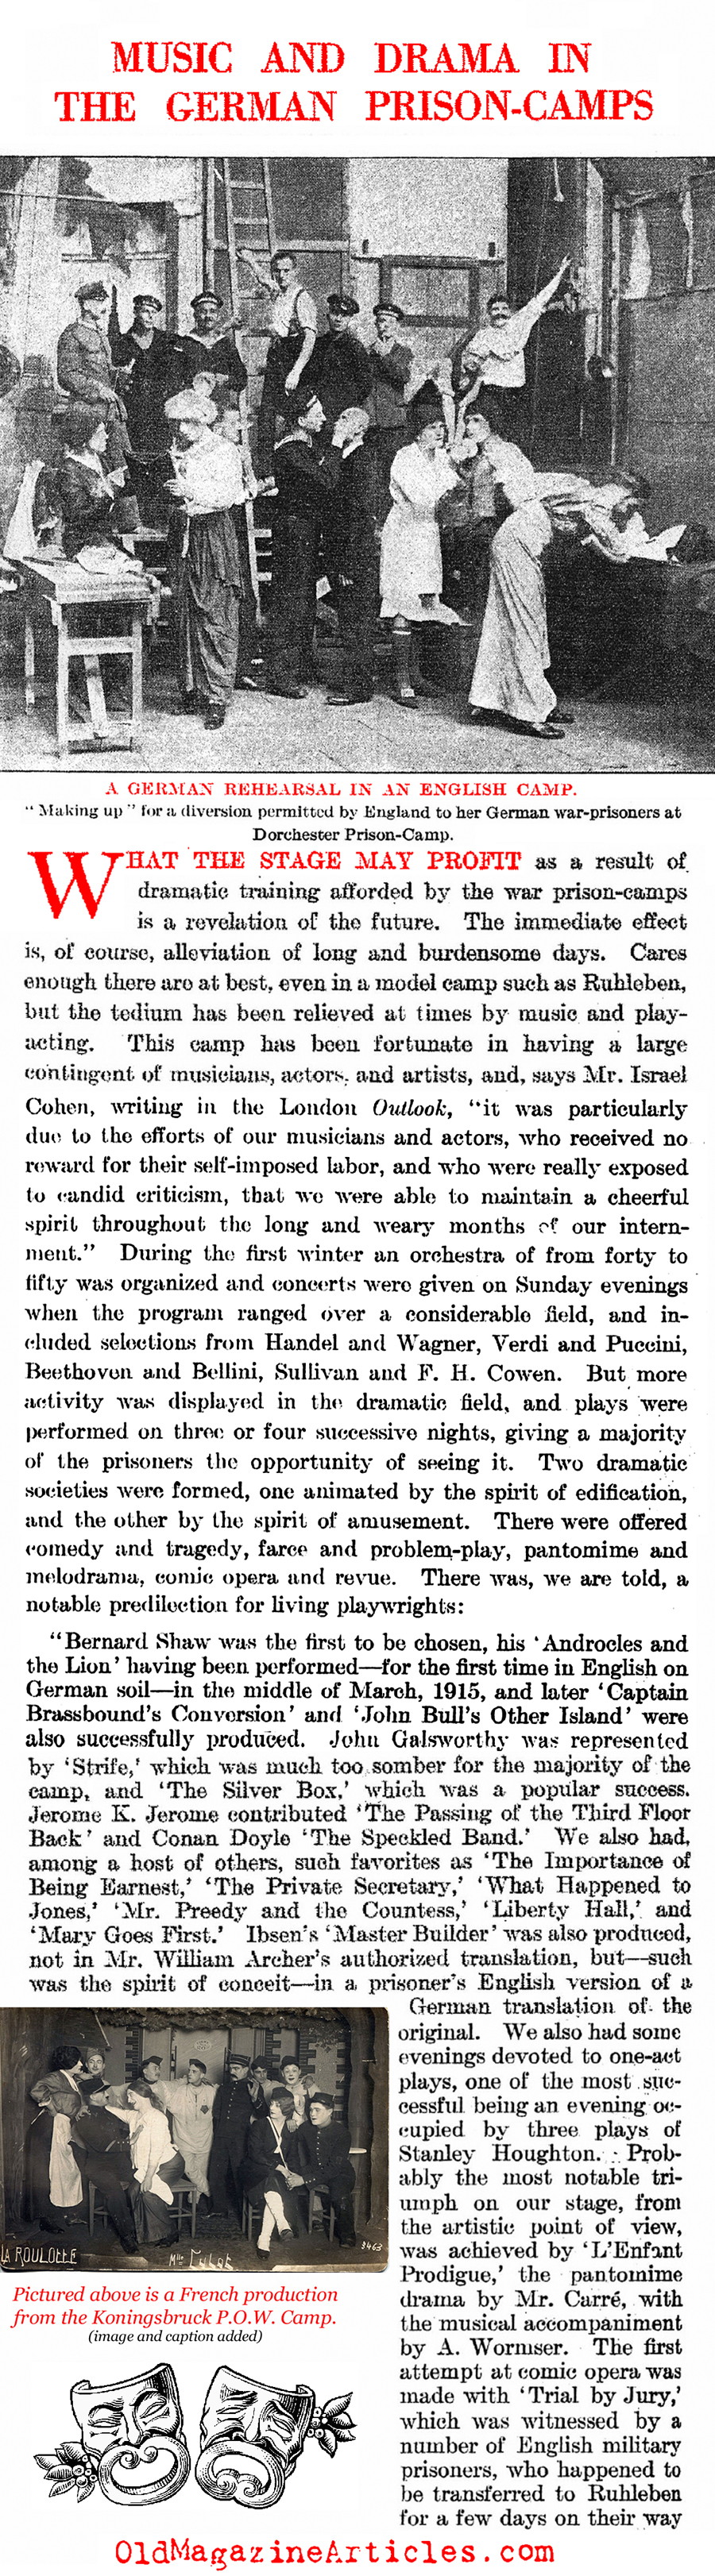 High Culture in World War One Prison Camps (Literary Digest, 1917)